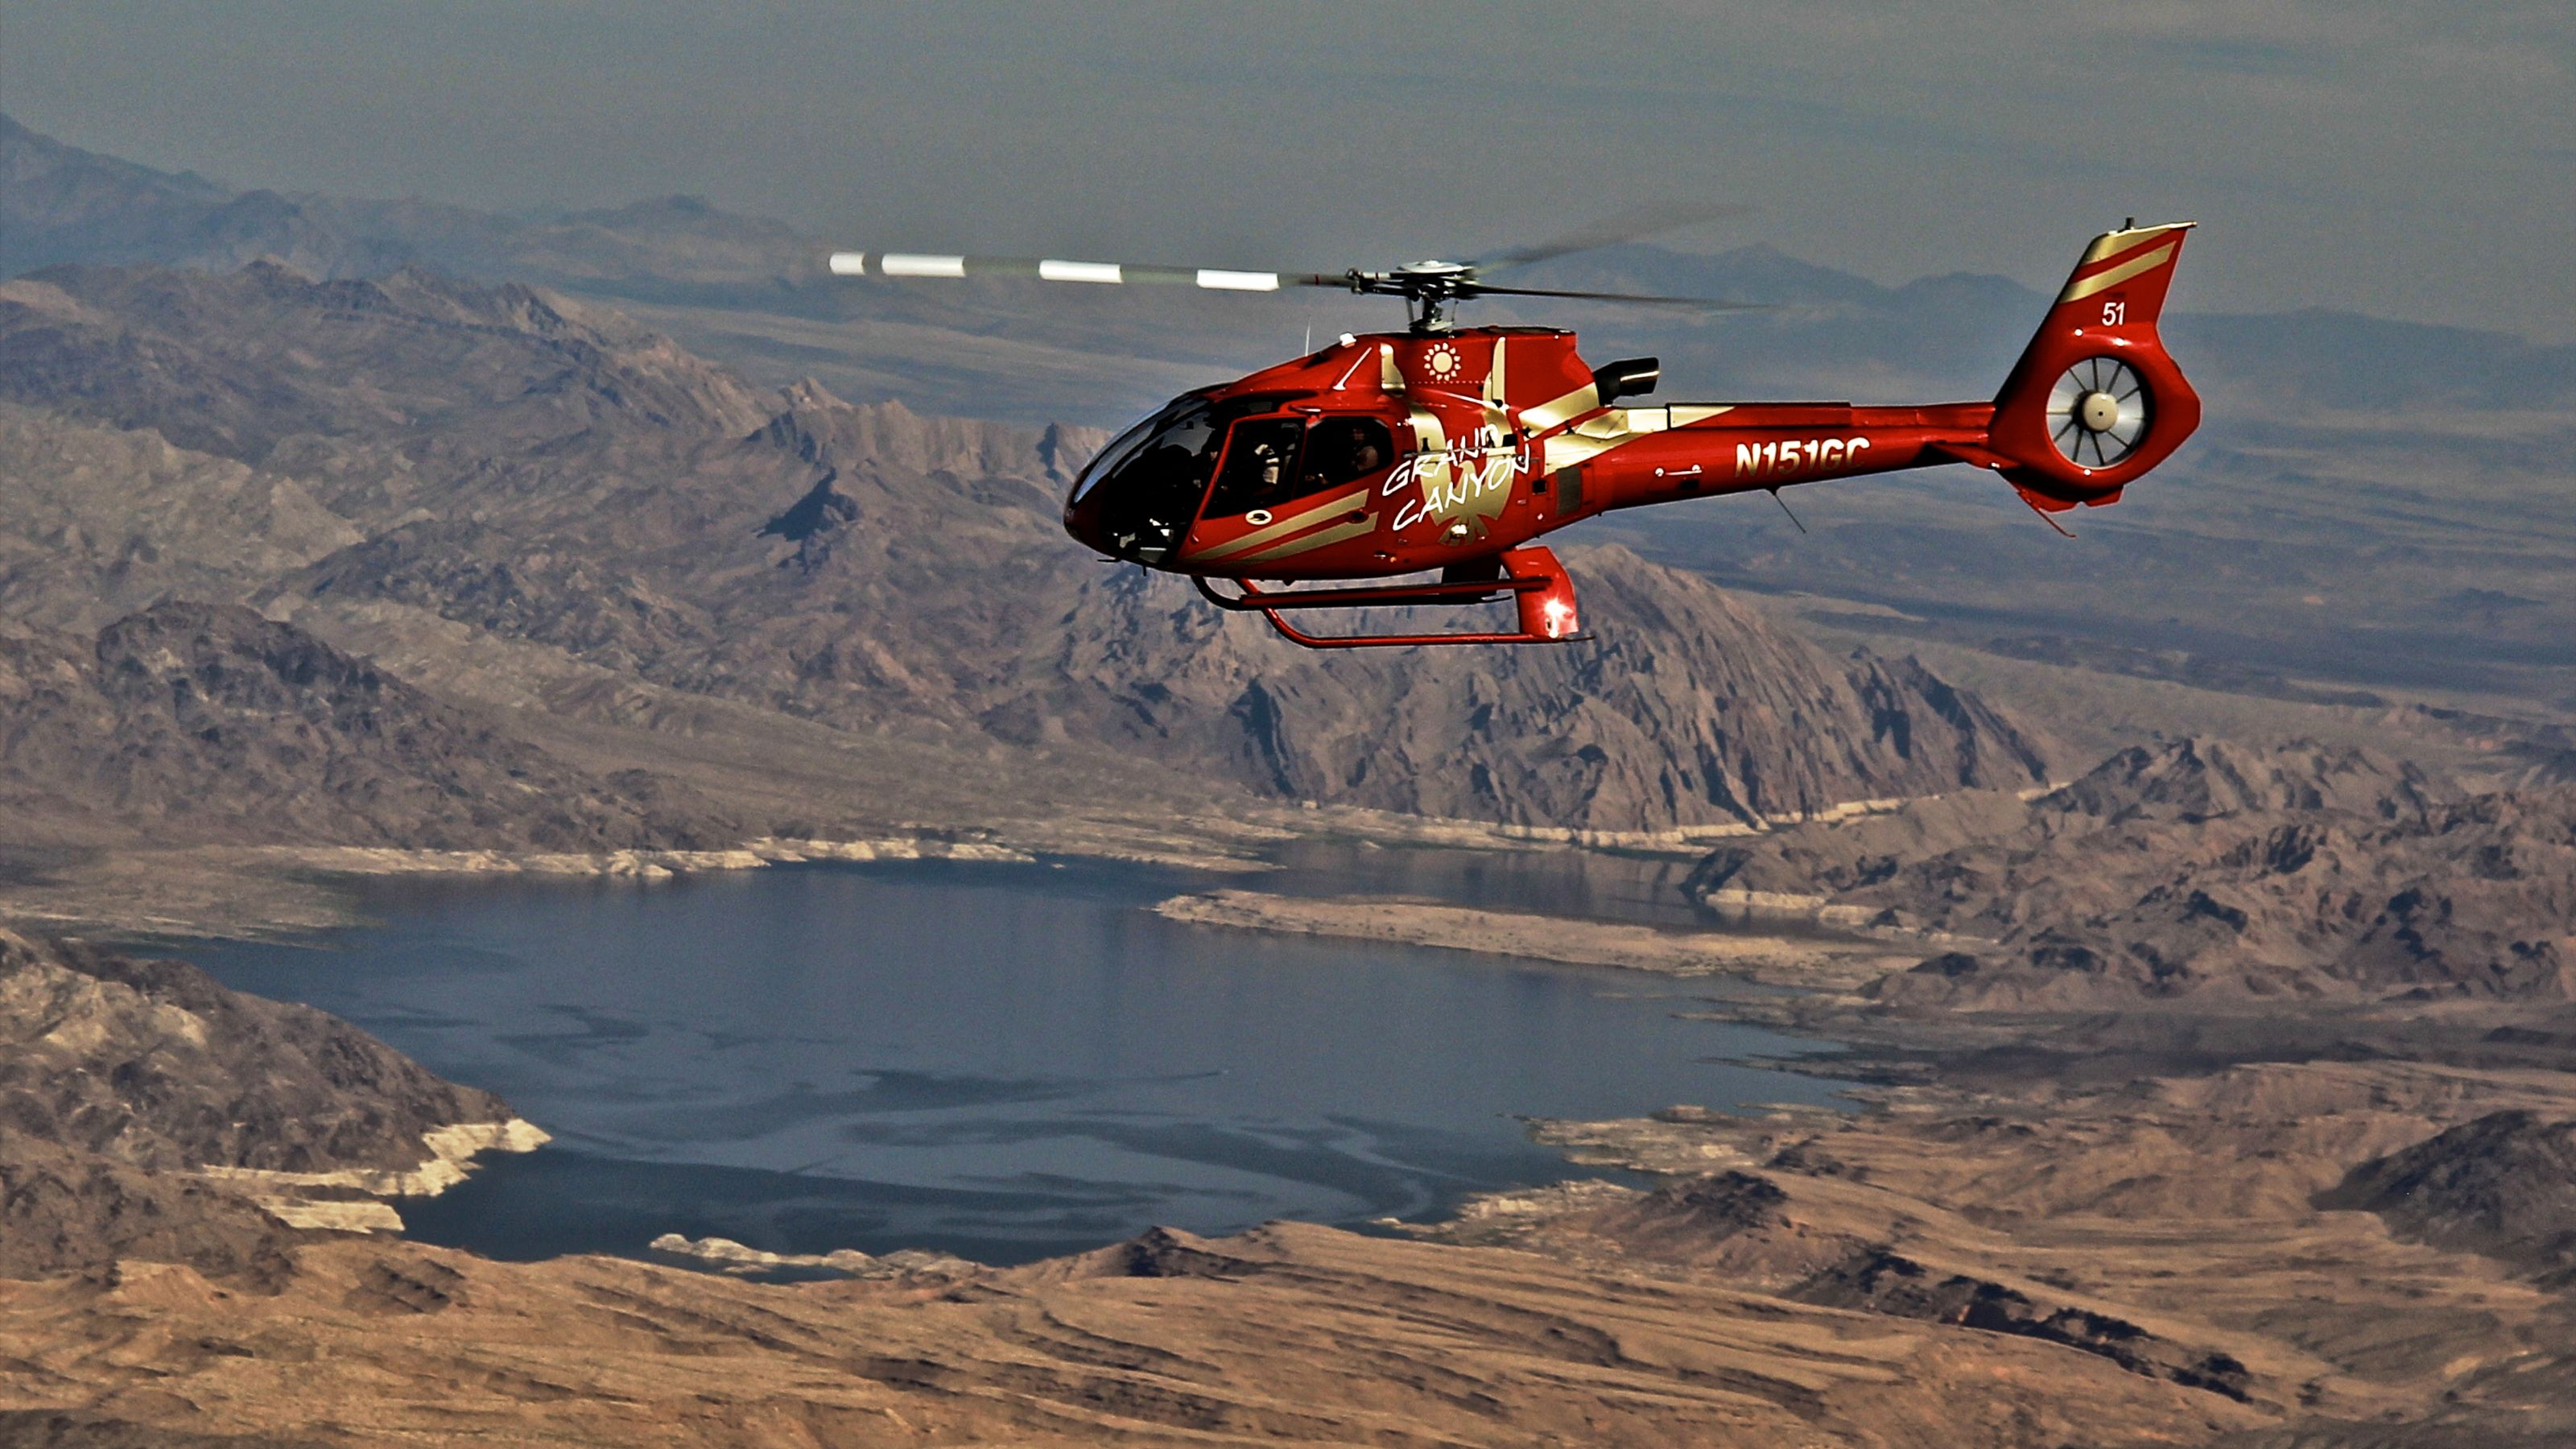 red helicopter flying over mountainous area in nevada